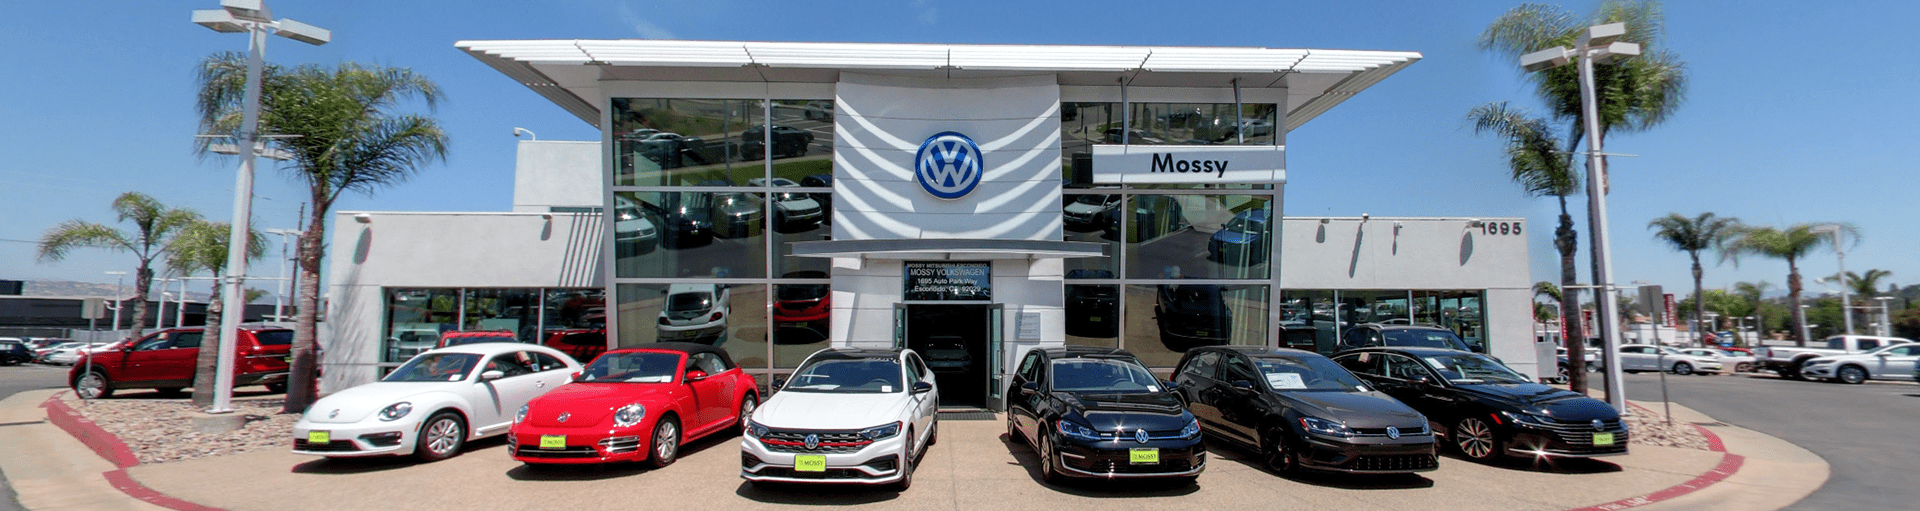 Mossy Volkswagen Service Department